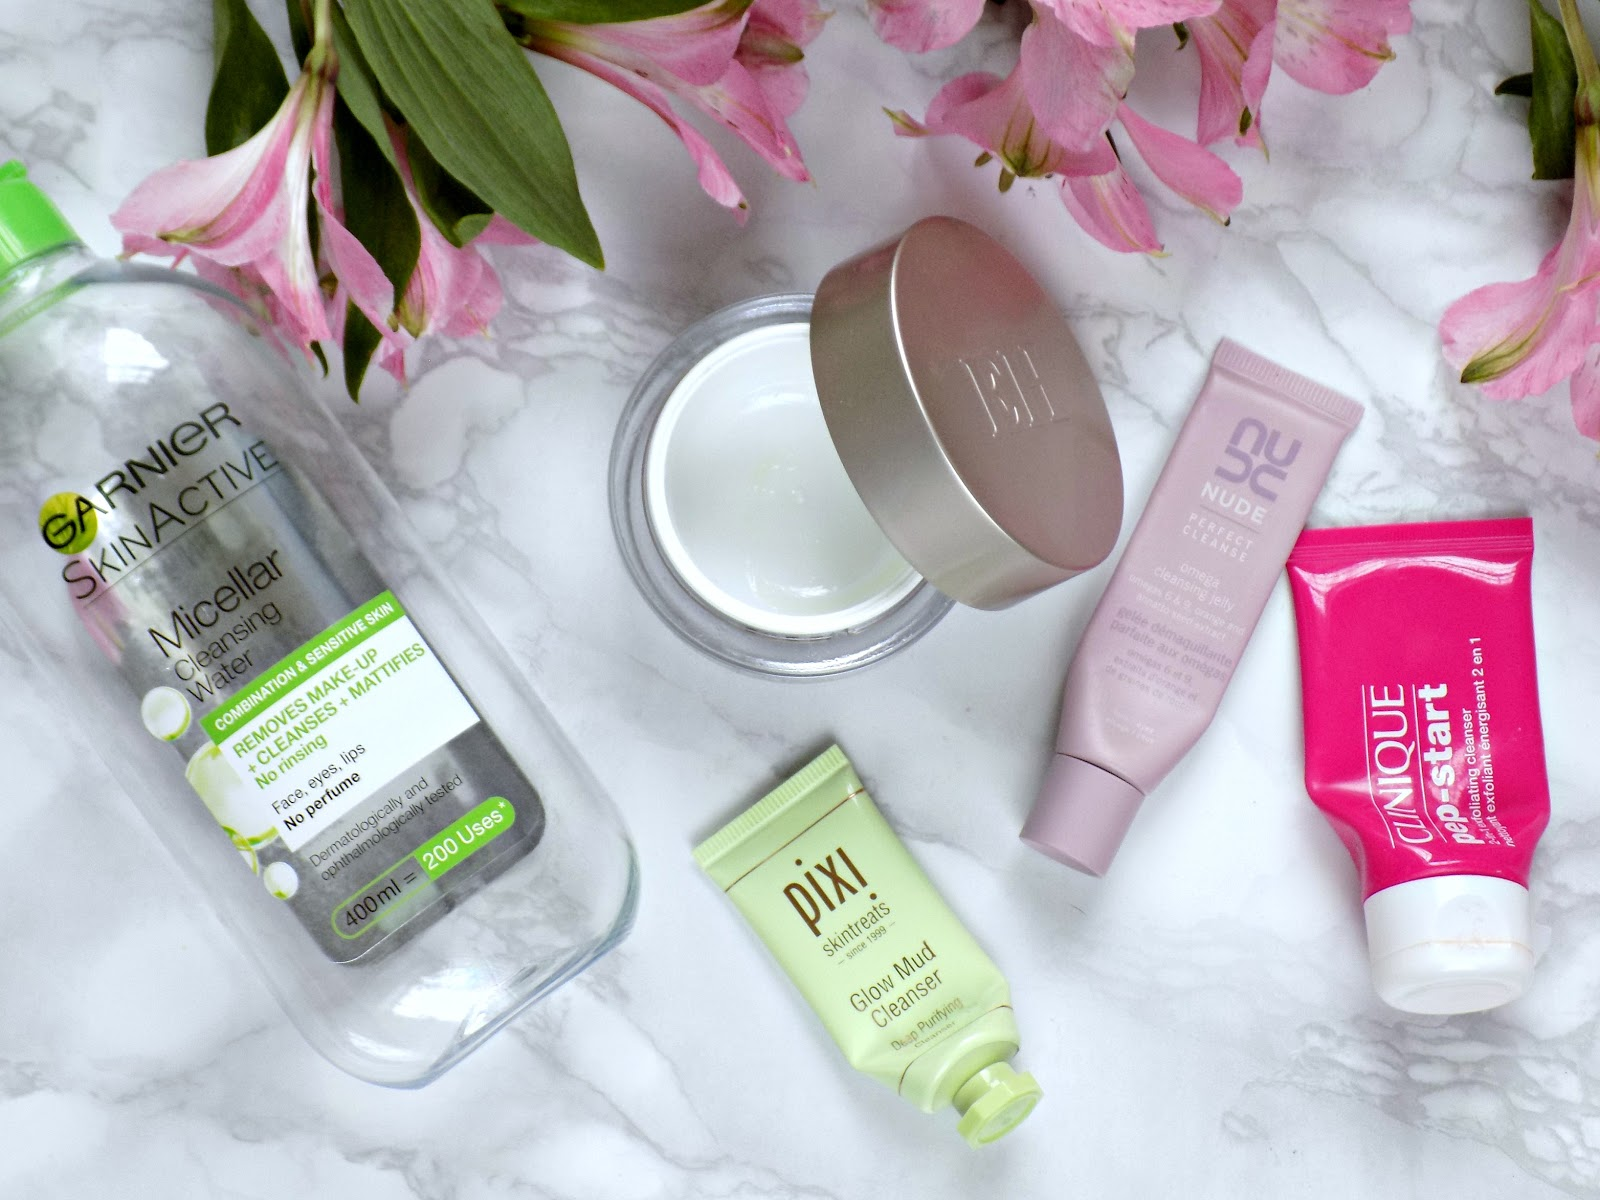 Cleansers I've used up lately